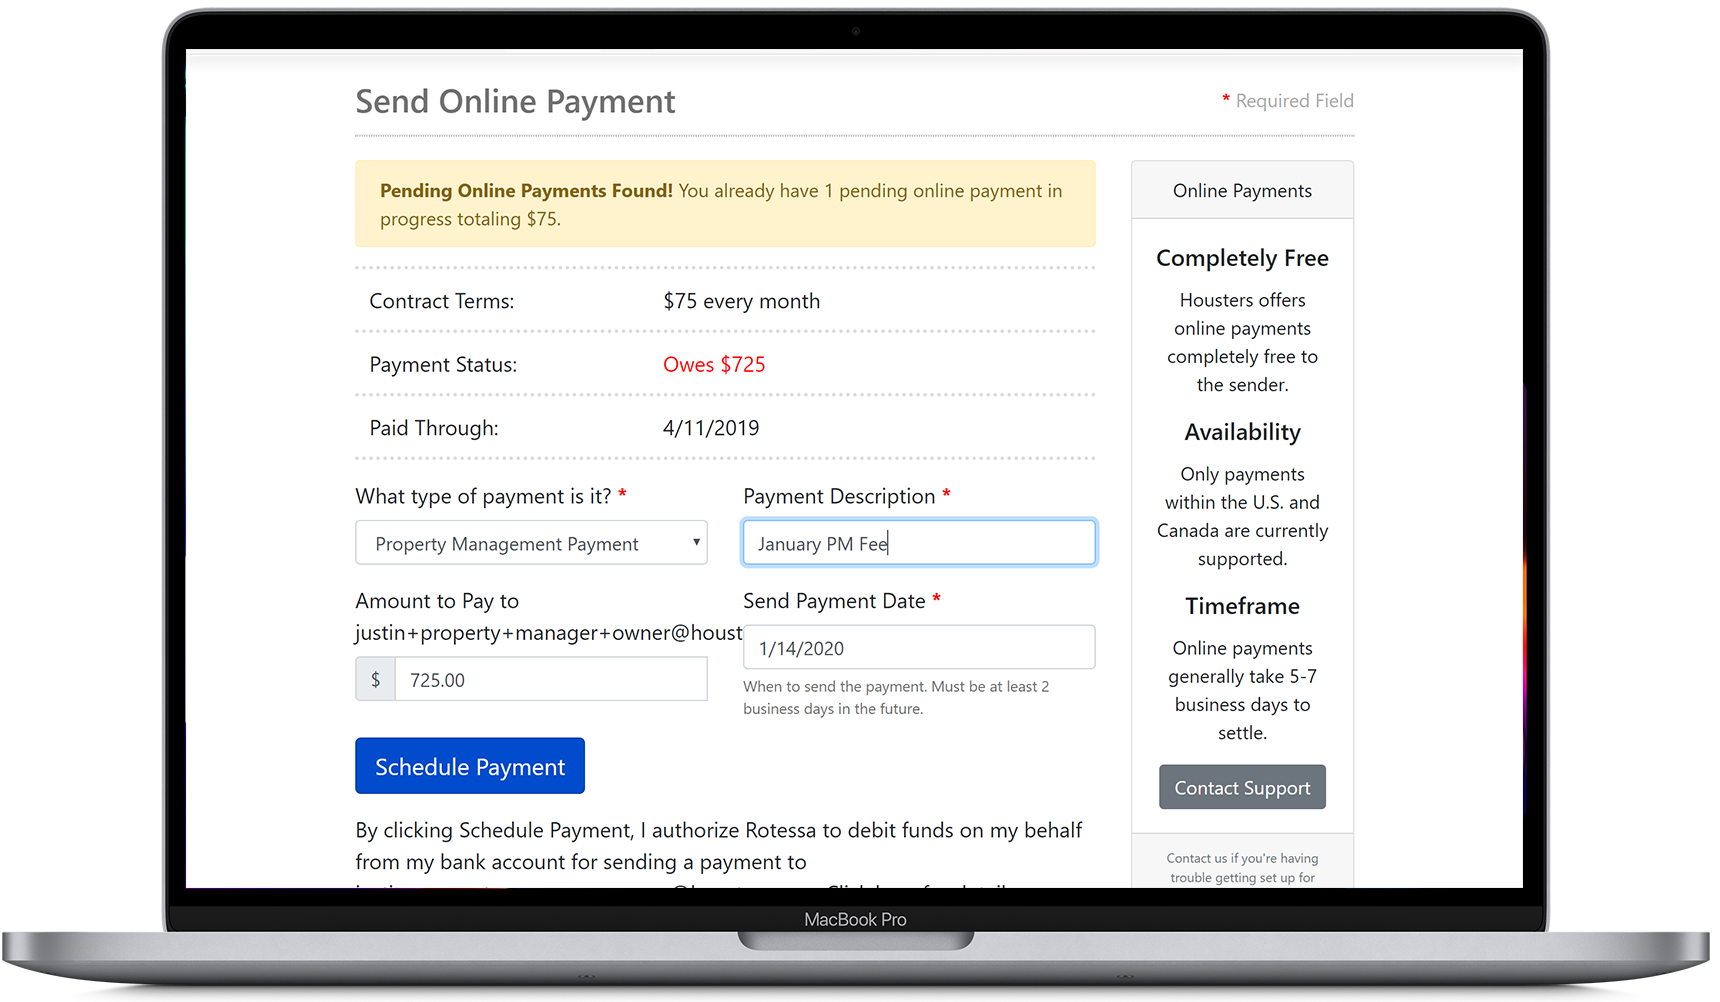 Send an online payment from a landlord to a property manager